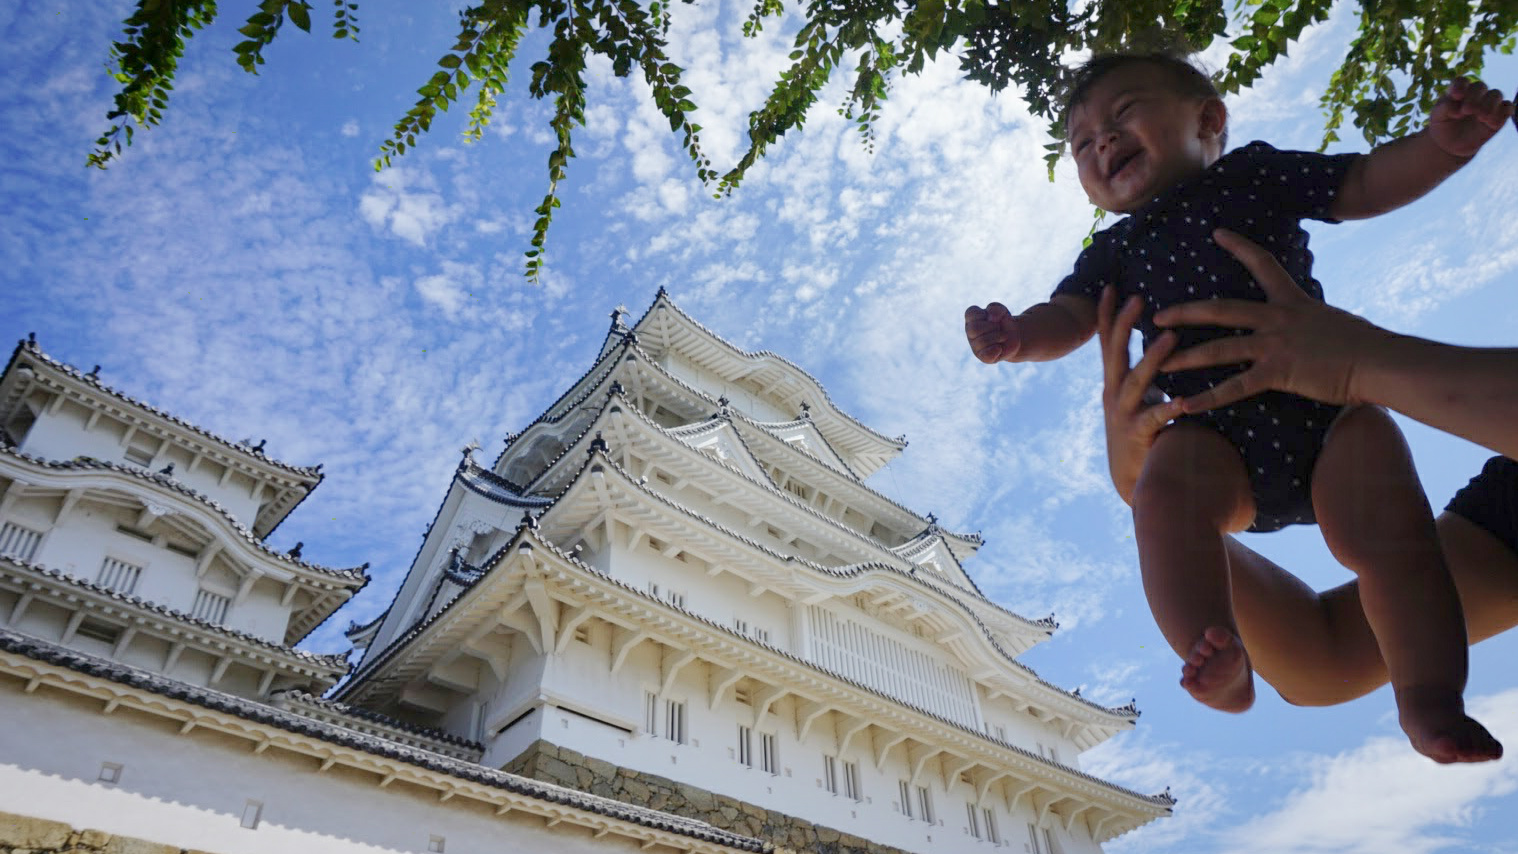 Elden (7 months old) on his first international trip to Japan